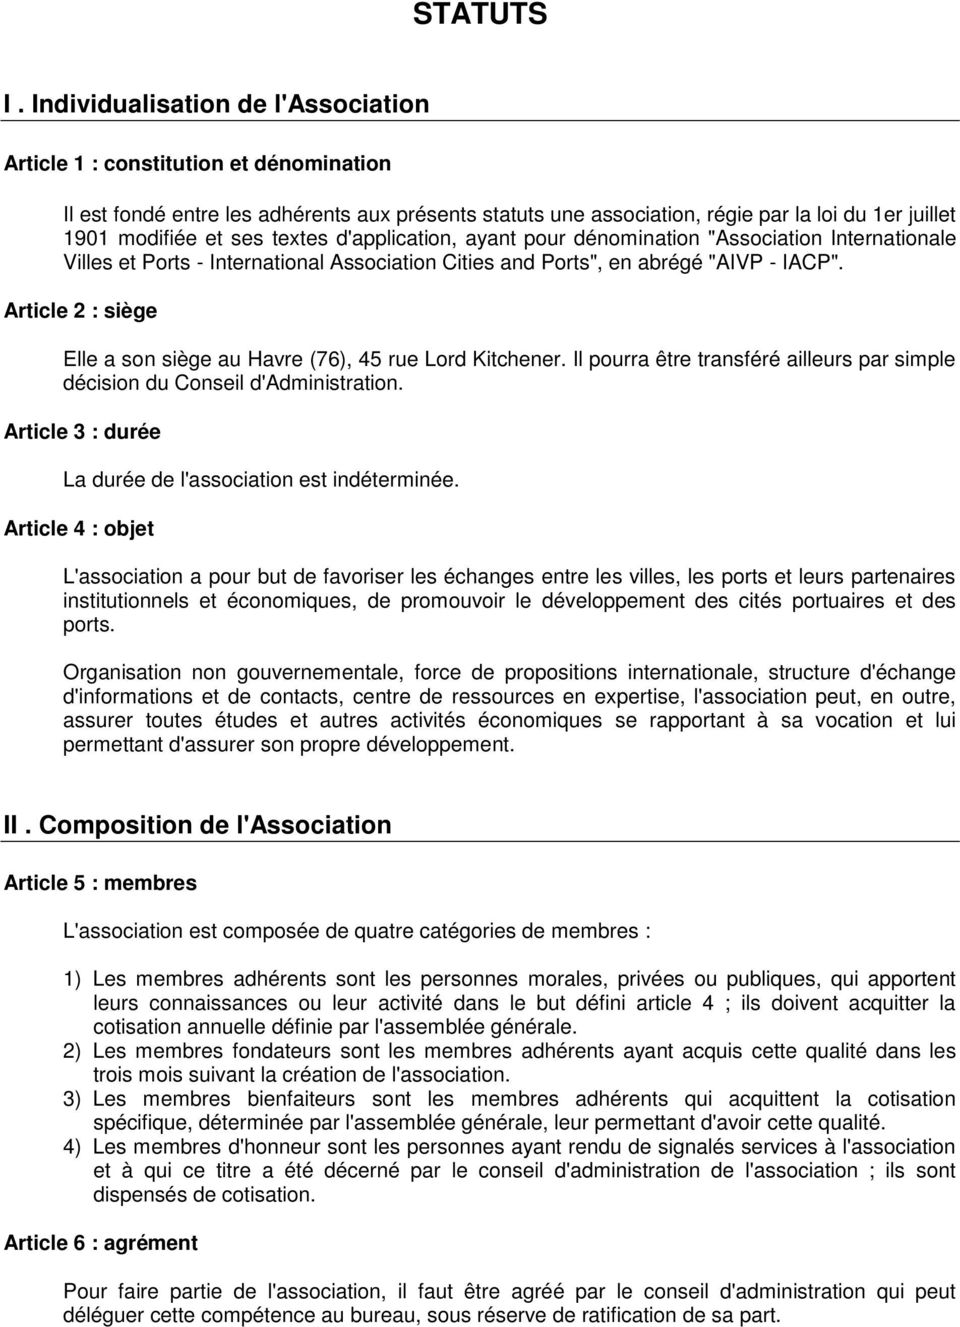 "textes d'application, ayant pour dénomination ""Association Internationale Villes et Ports - International Association Cities and Ports"", en abrégé ""AIVP - IACP""."